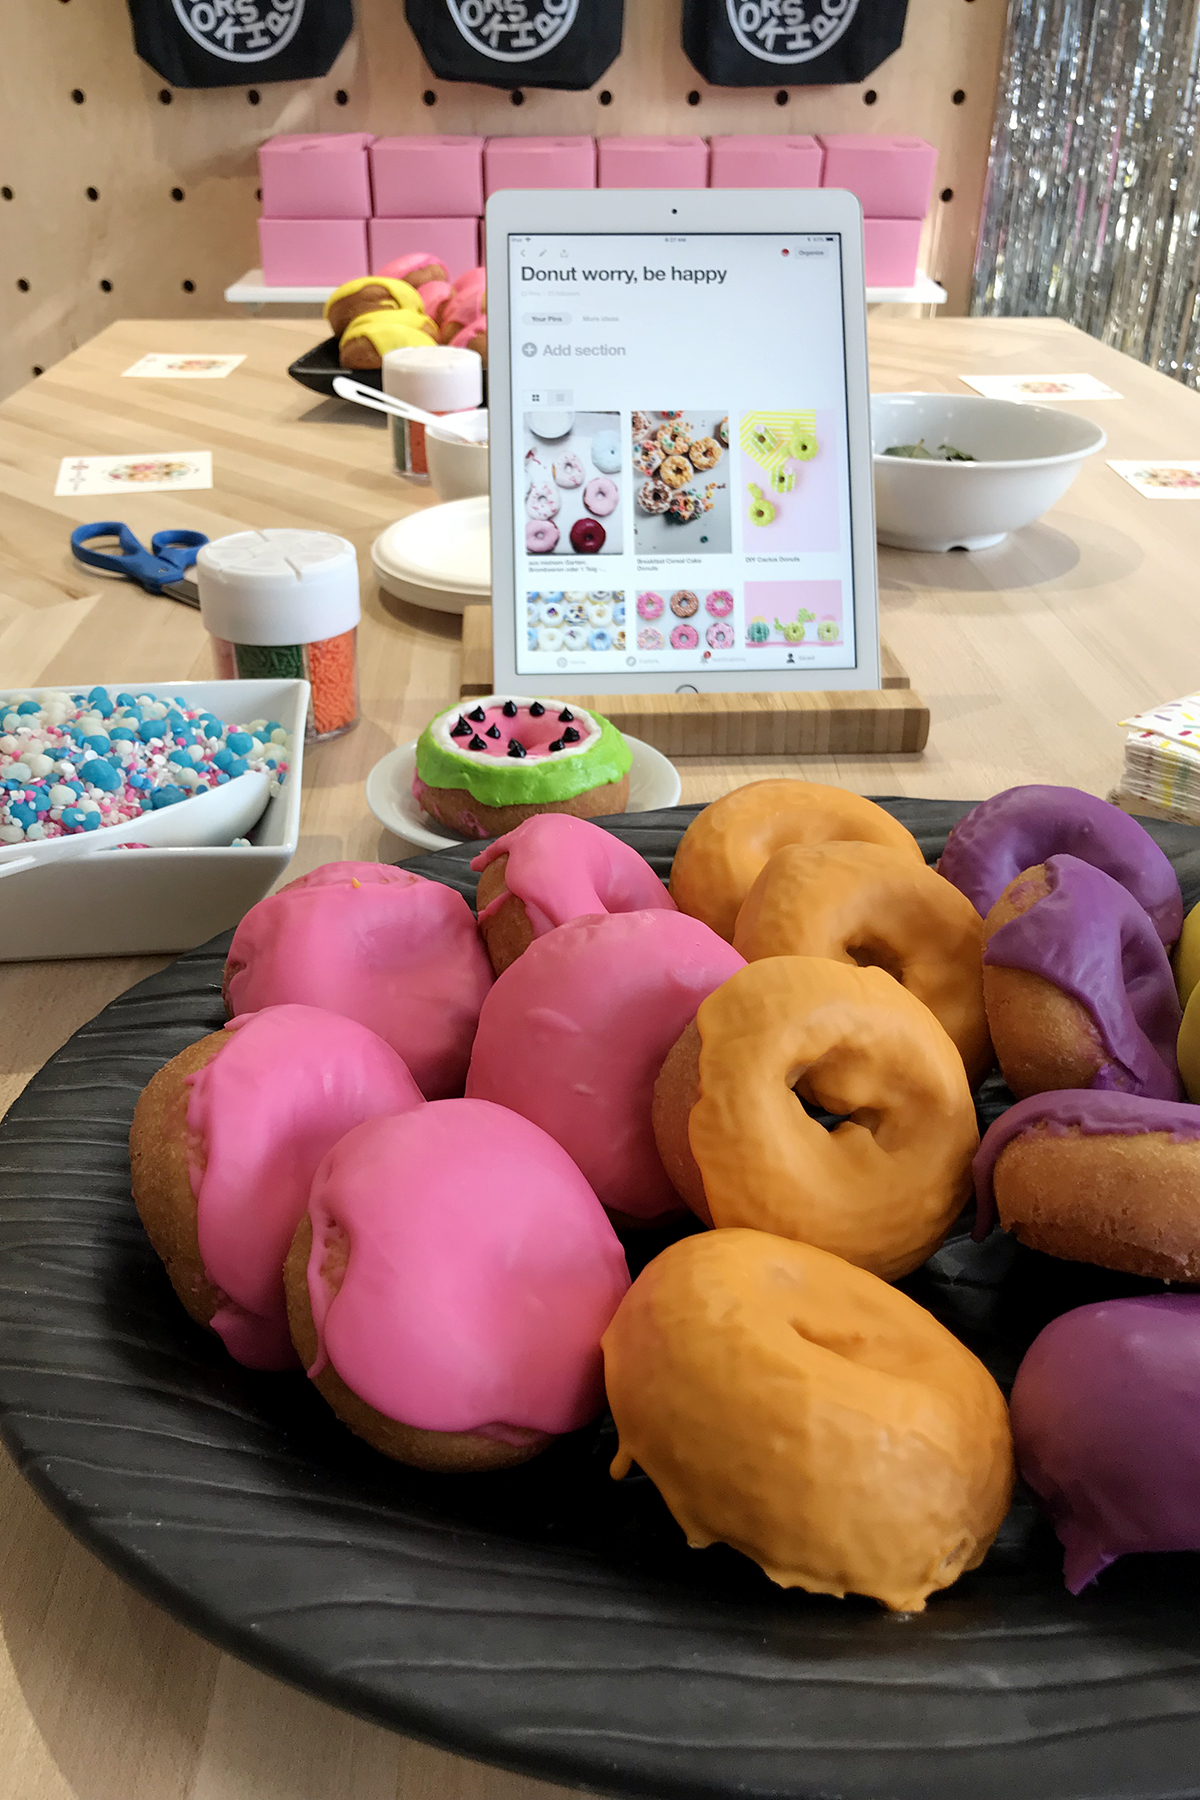 Donut Decorating Party, this would be fun for kids and adults #MyPinterest #Party #DonutParty